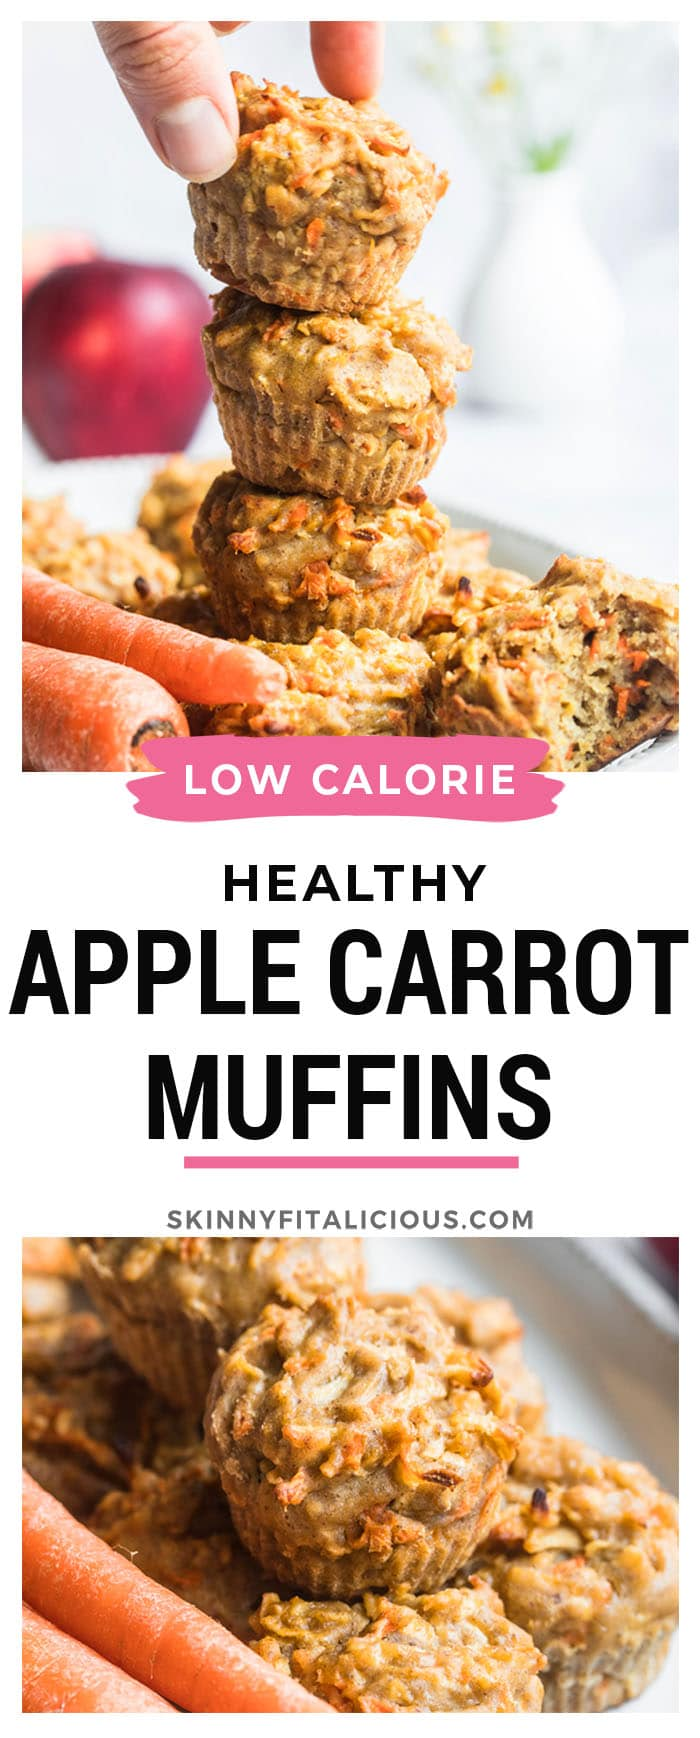 Healthy Carrot Apple Flax Muffins are made low calorie, gluten free and dairy free with nutrient dense ingredients.